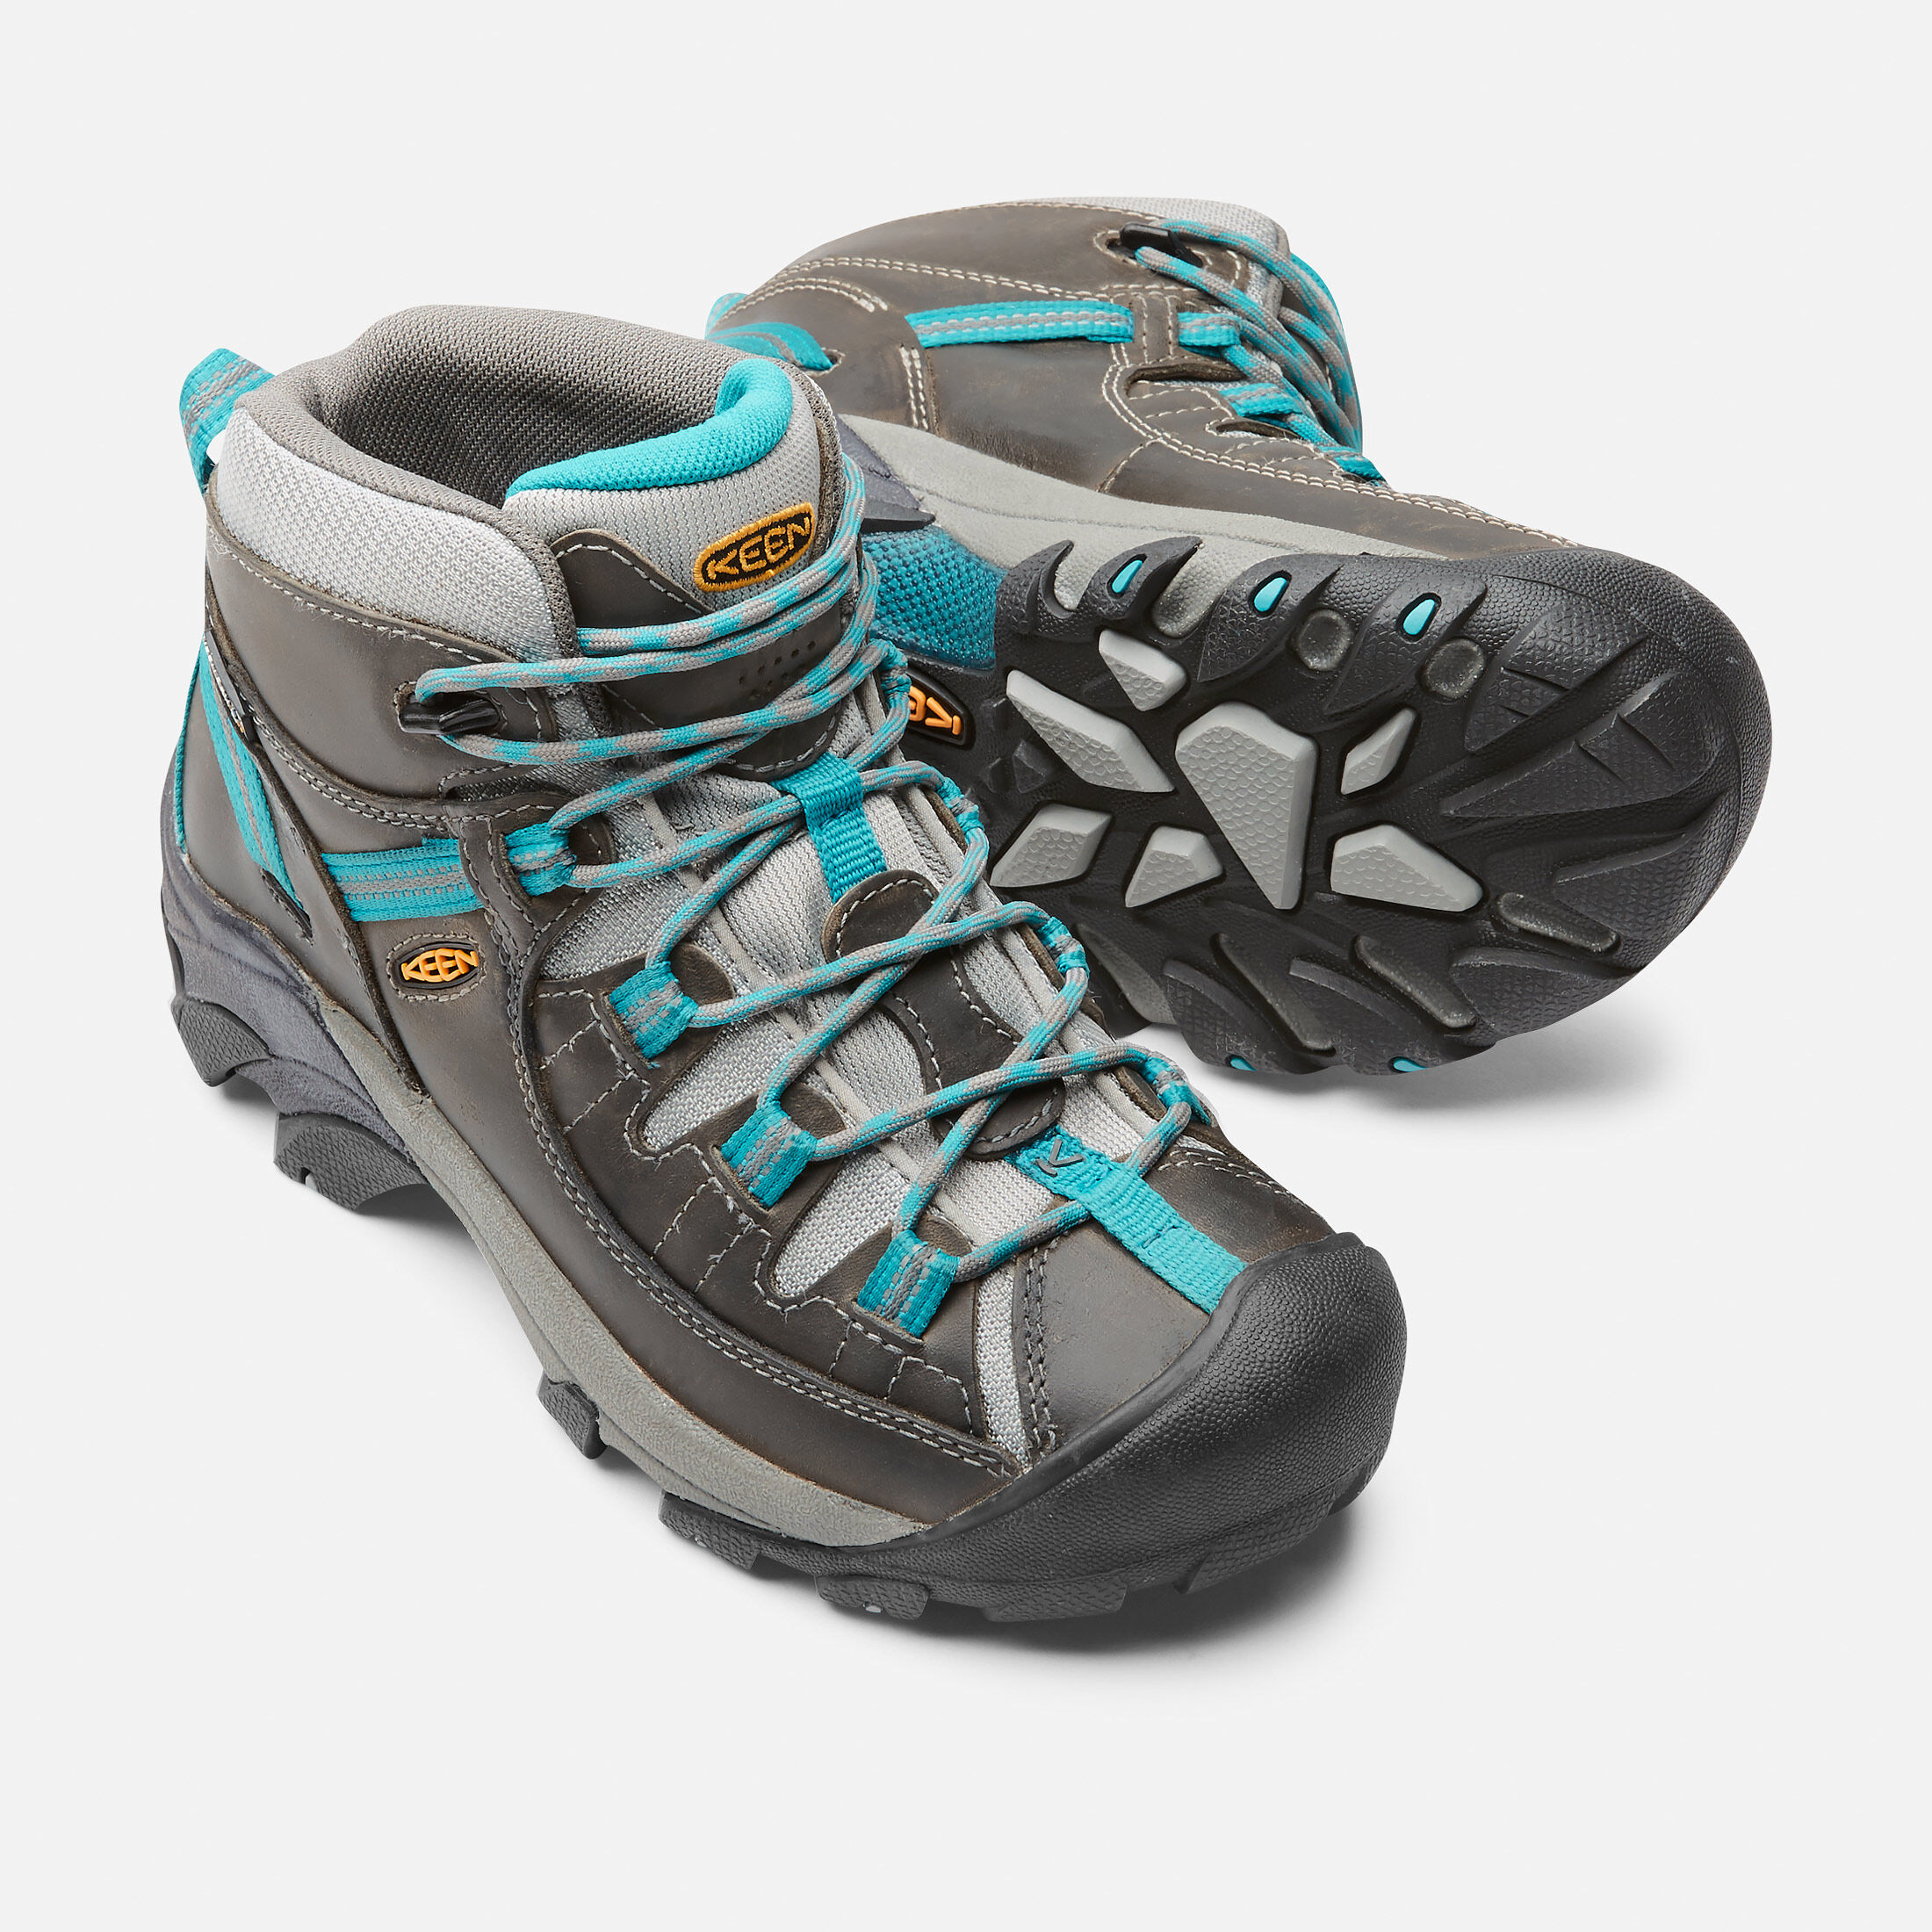 Best Beginner Hiking Boots For 2020